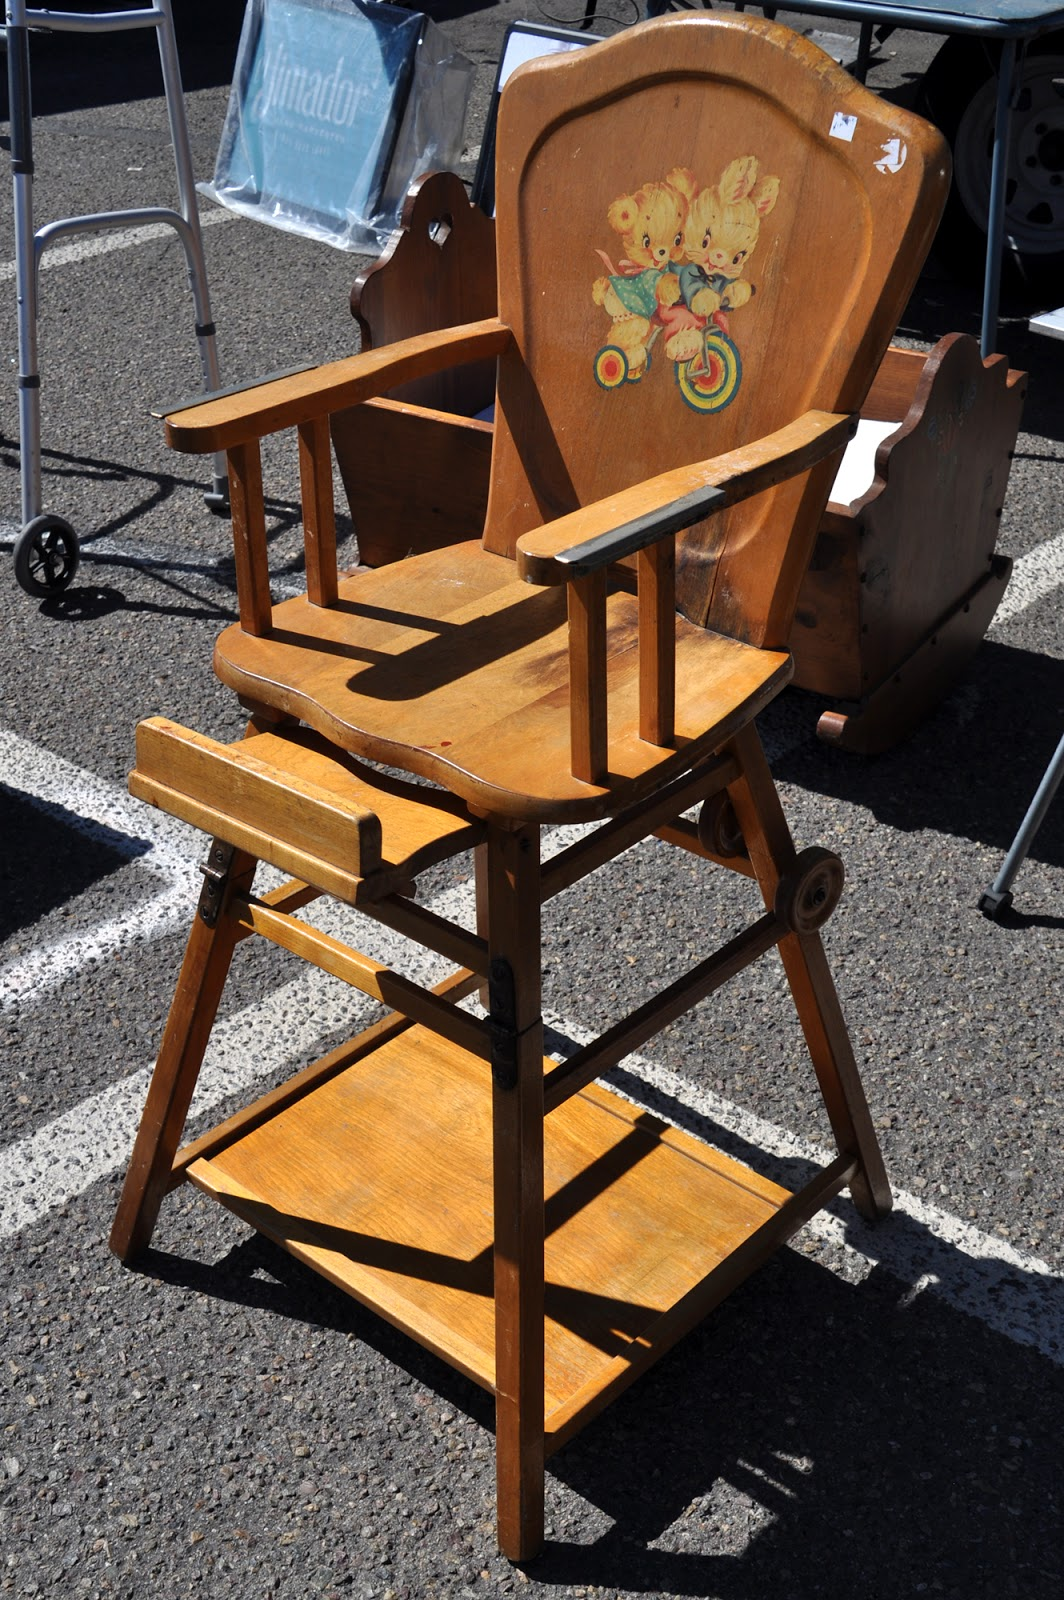 High Chair With Wheels 1 2 Recliner Just A Car Guy I Know It 39s Odd But This Has